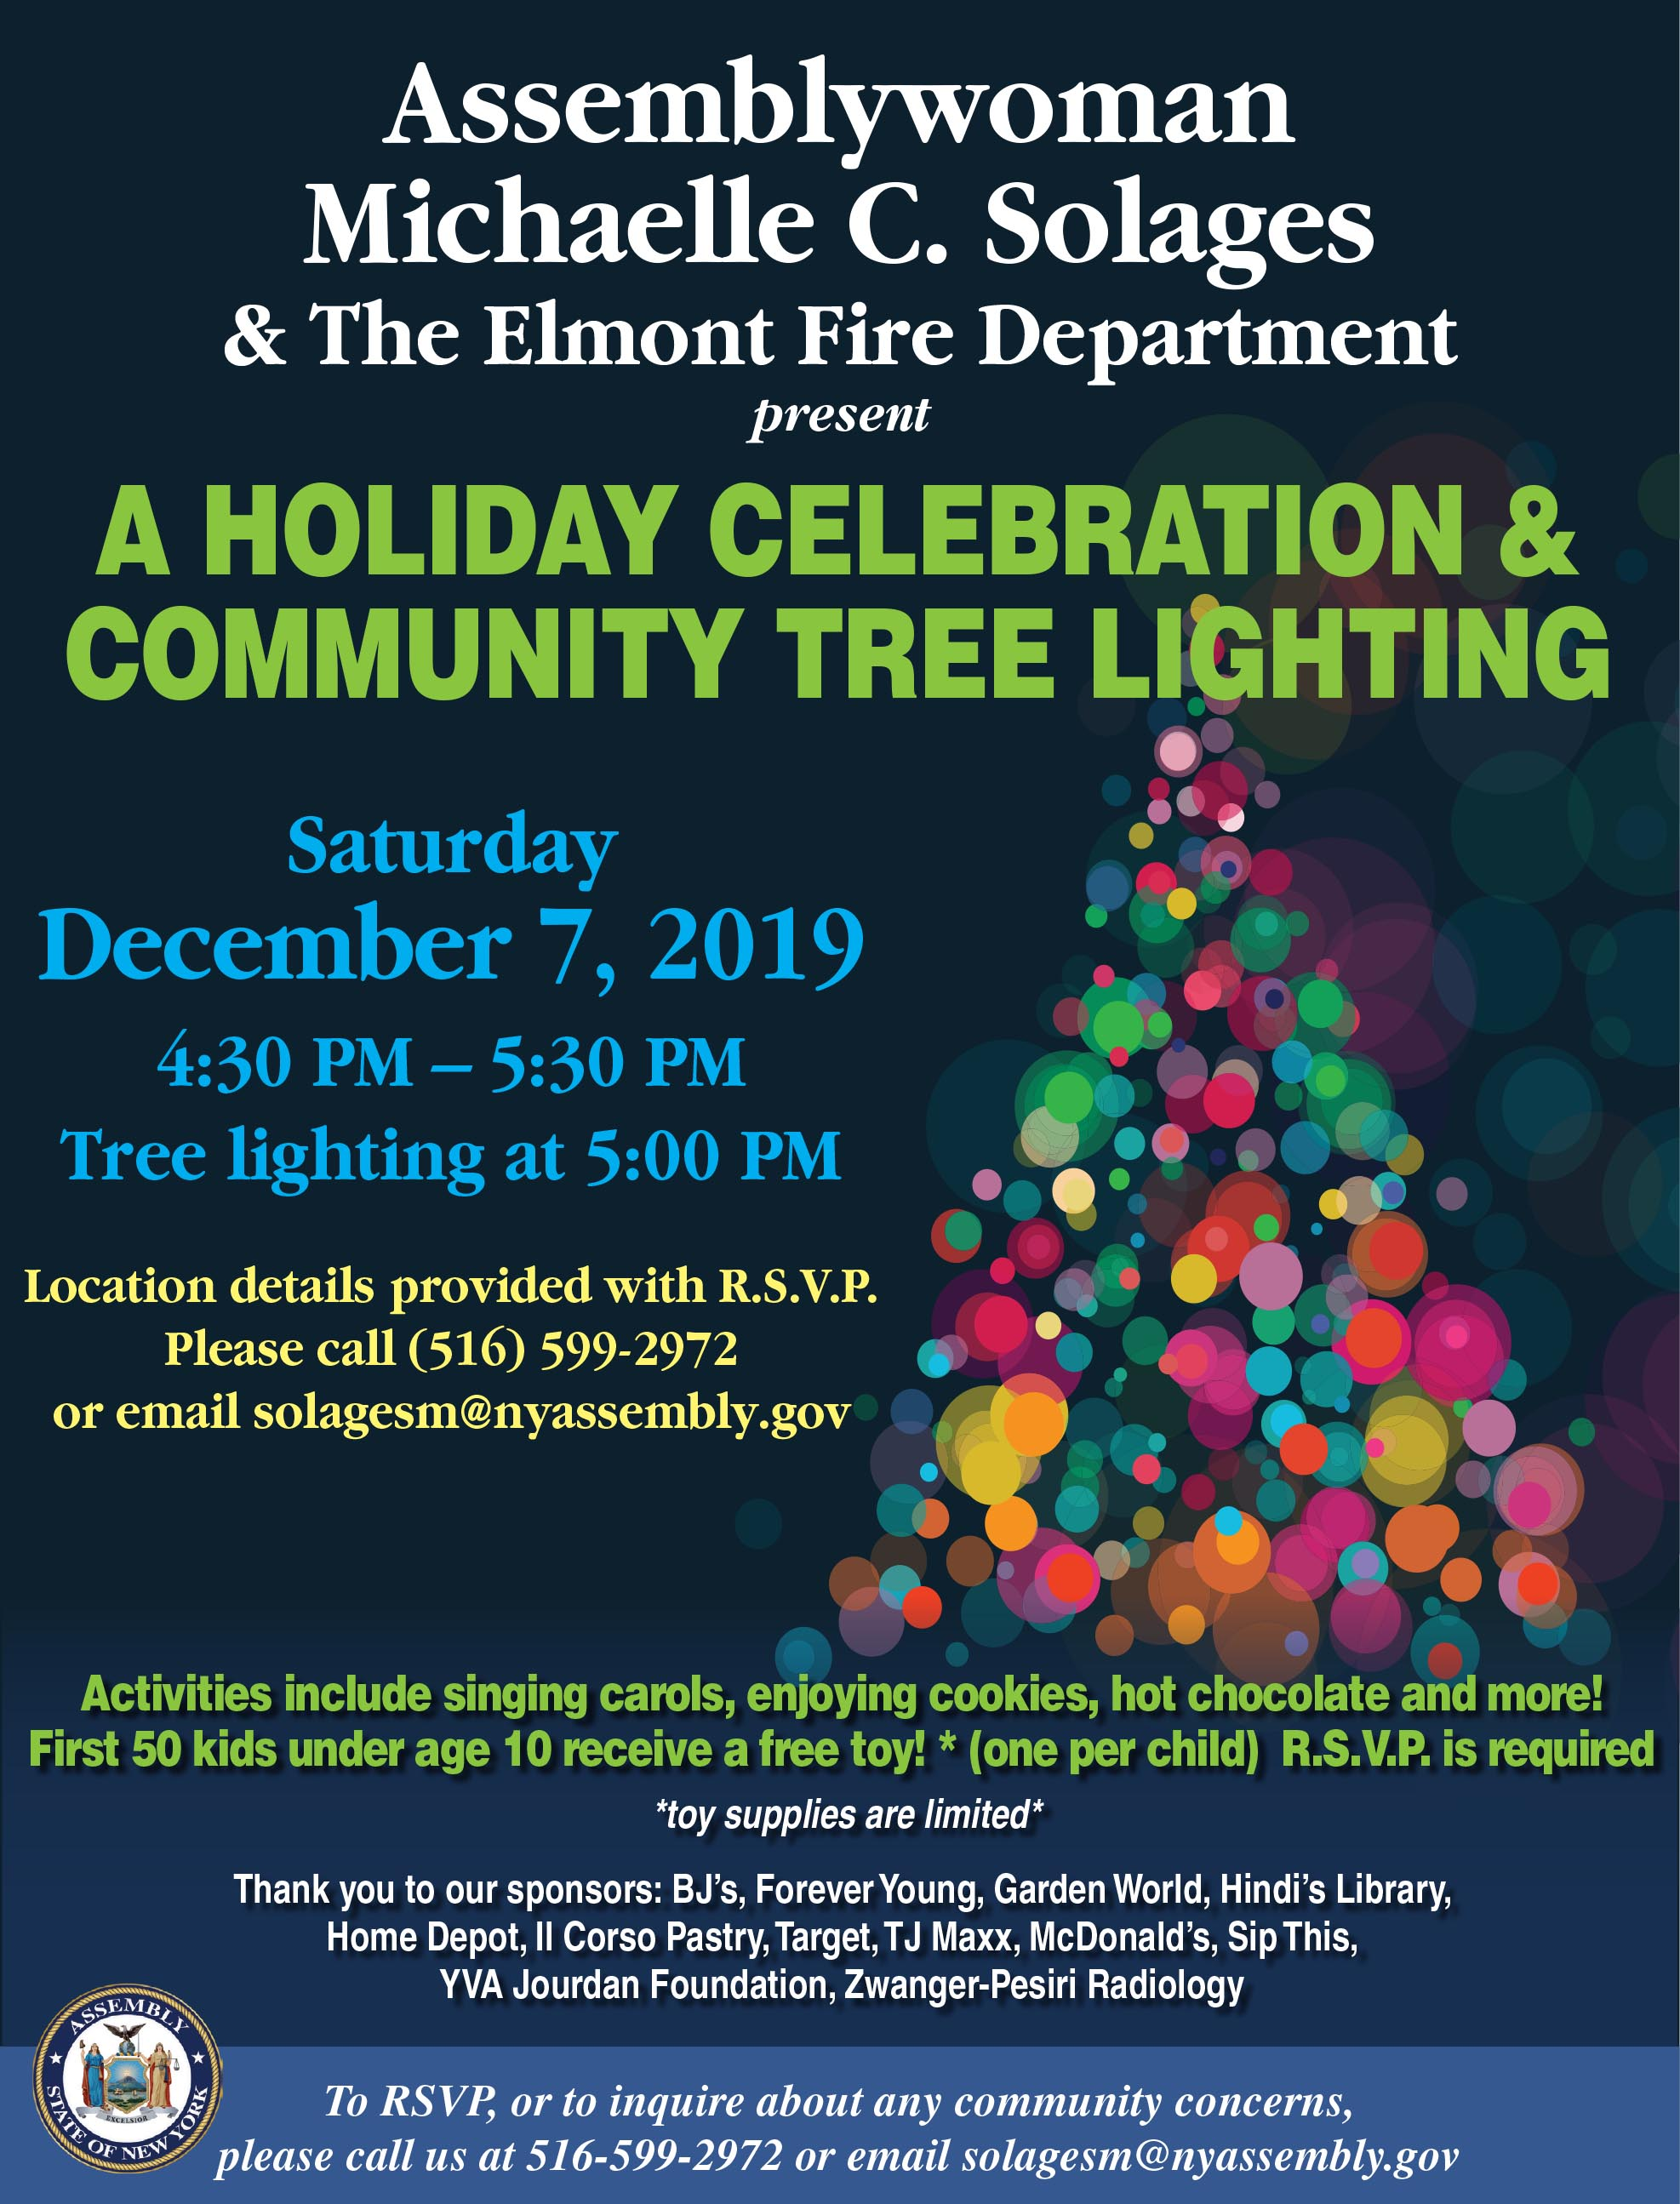 A Holiday Celebration & Community Tree Lighting